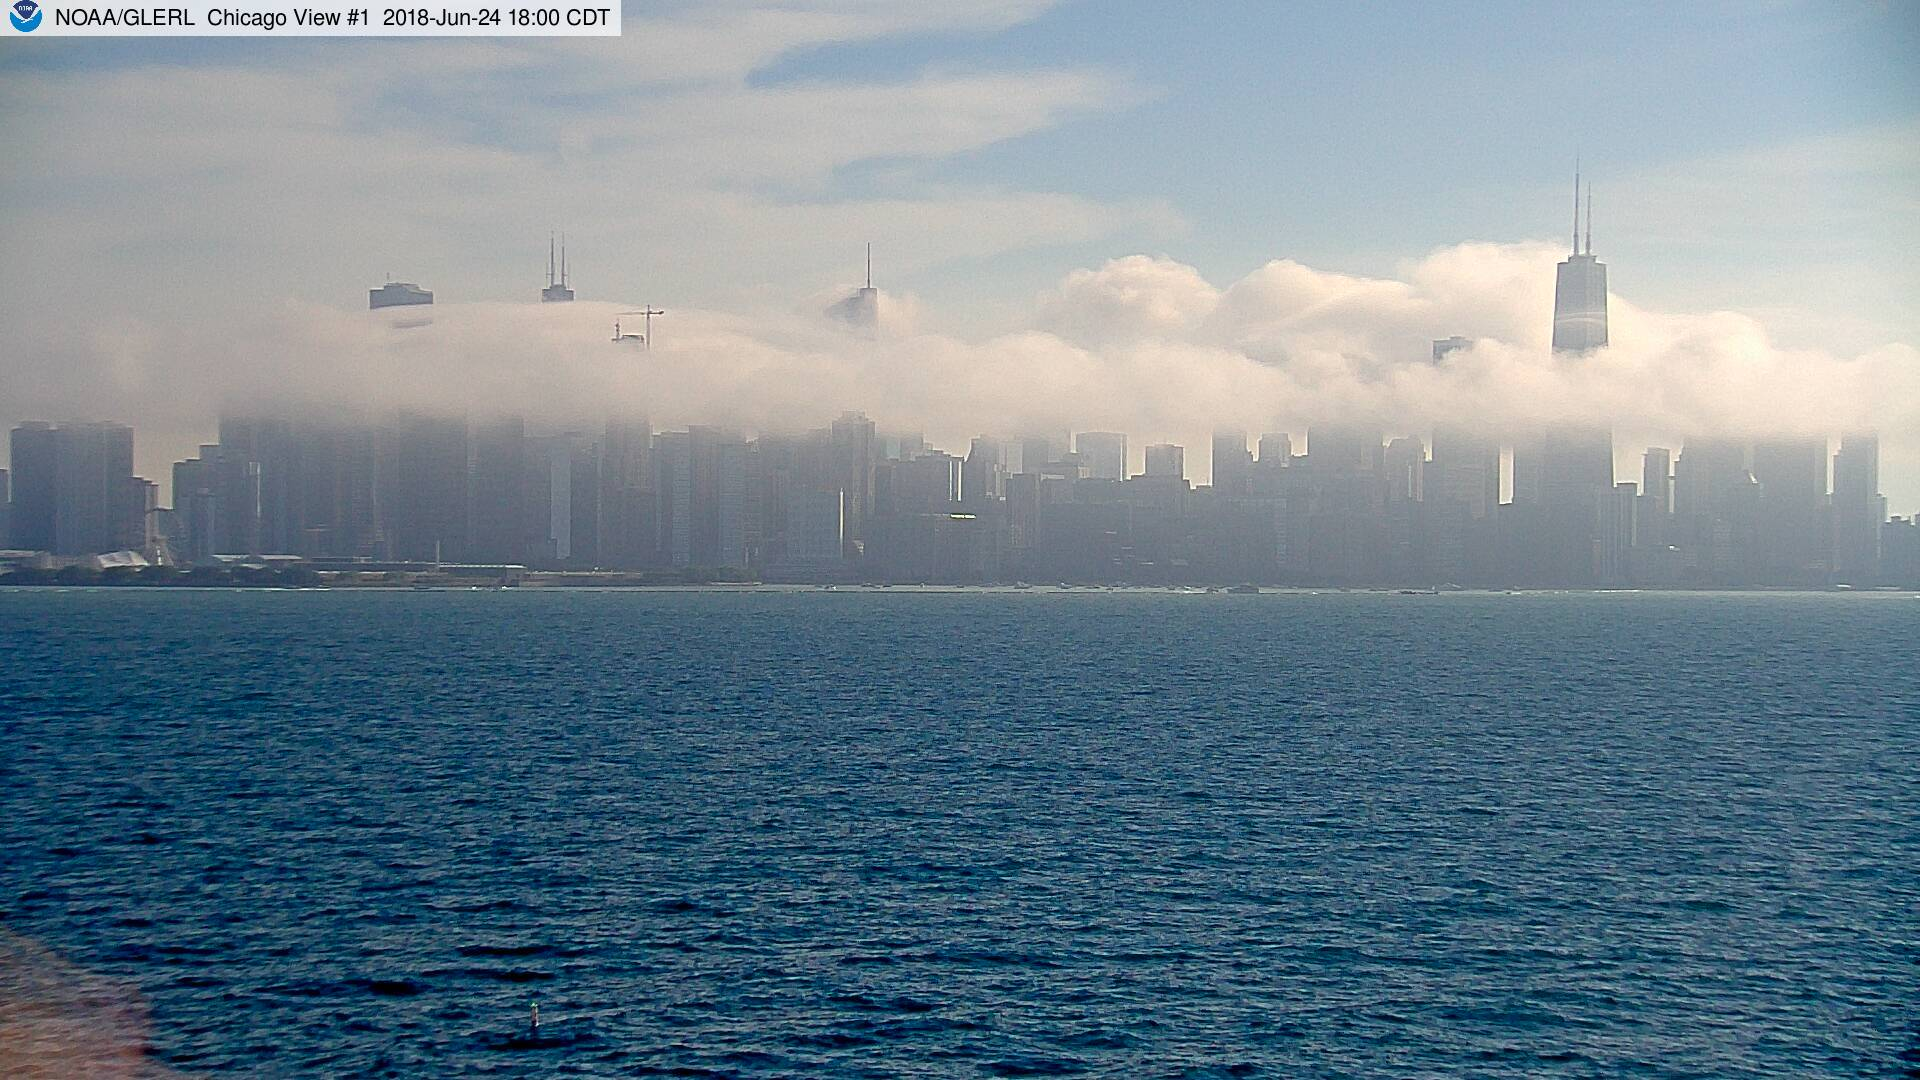 chicago glerl with neat fog low cloud layer 6 24 18_1529887648194.jpg.jpg